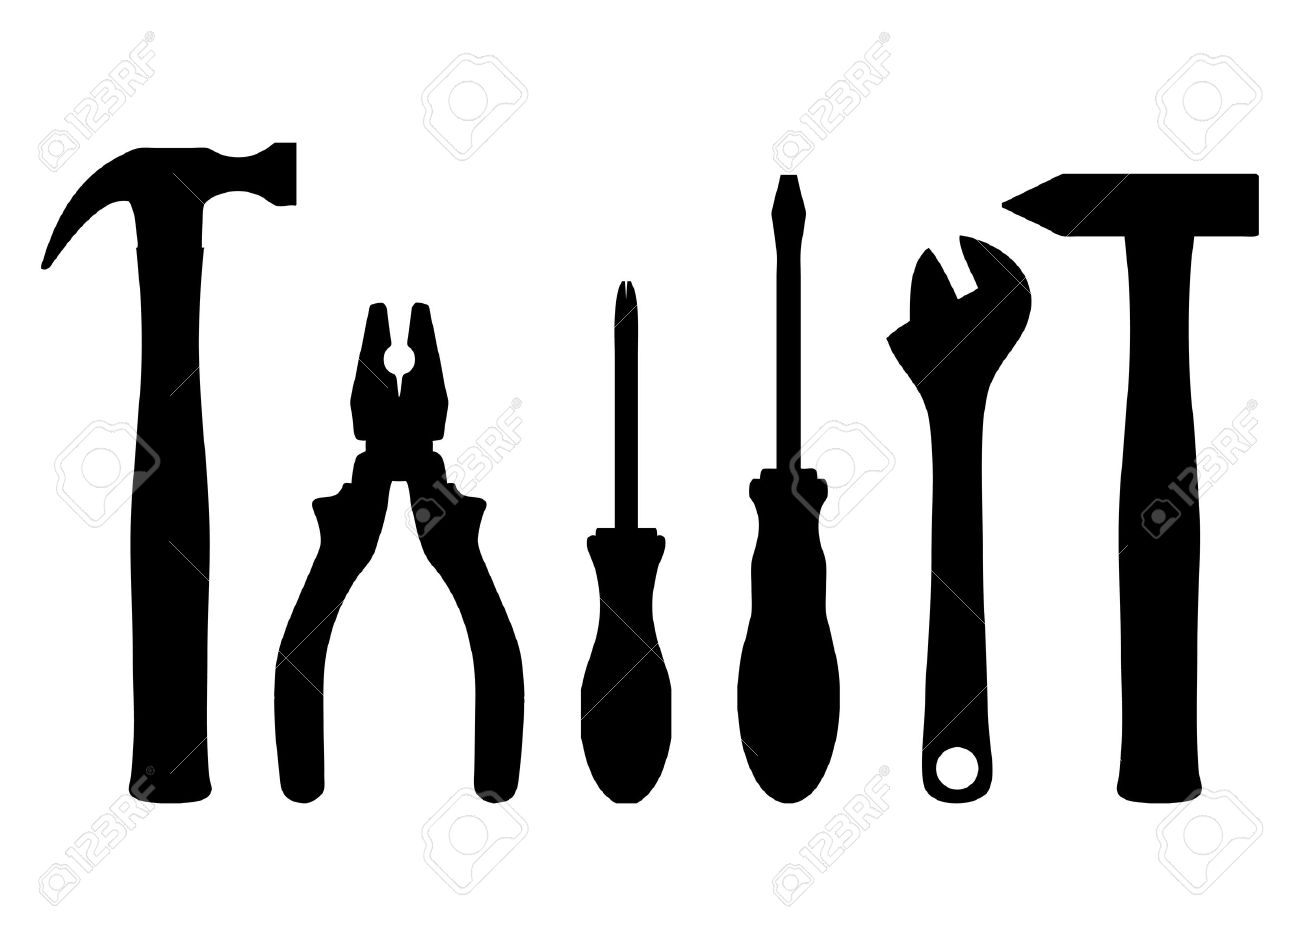 Wrench Black Vector Vector - Vector illustration